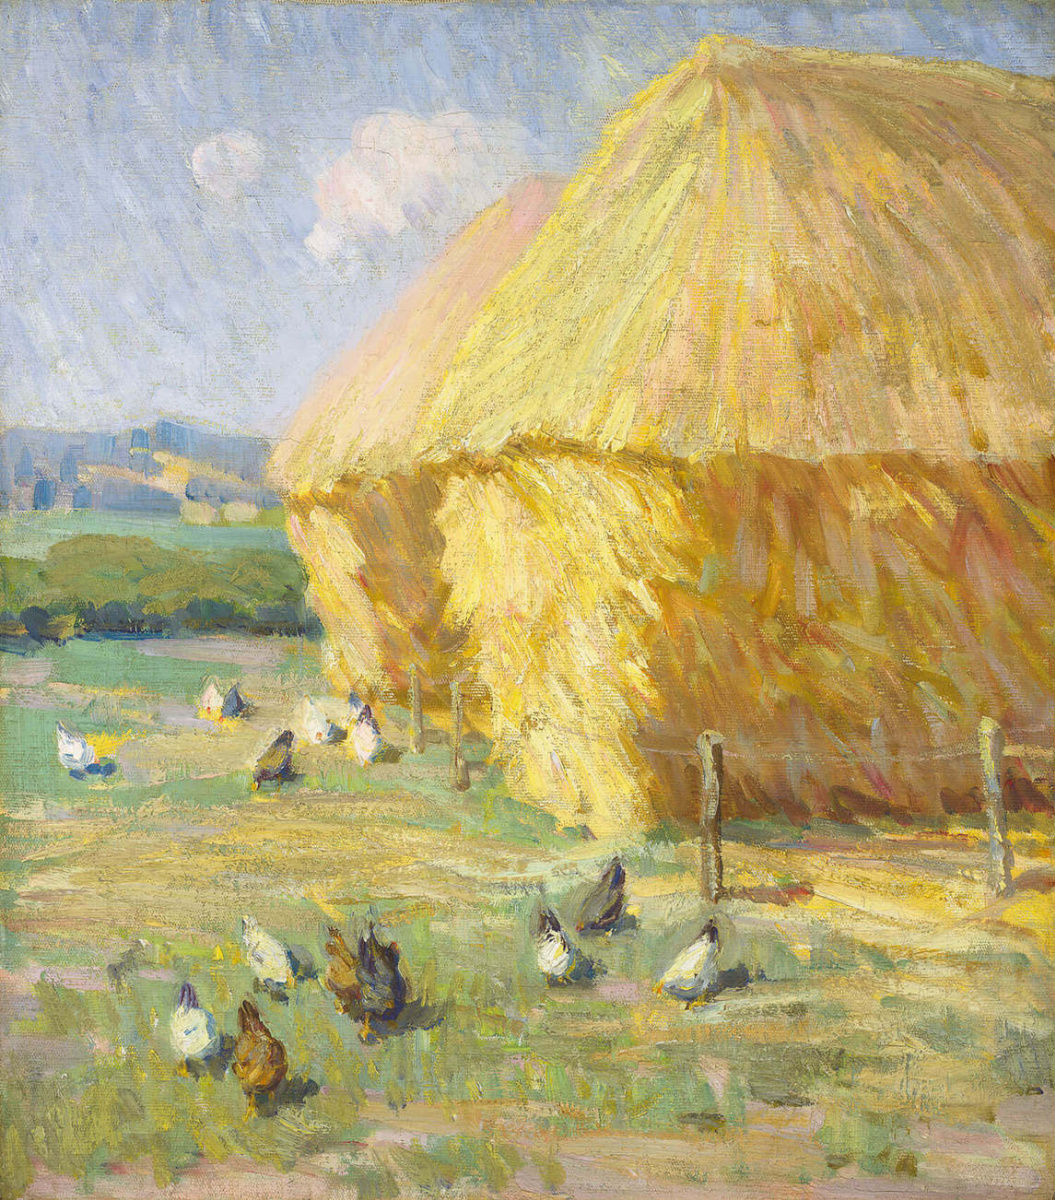 Helen Galloway McNicoll. Chickens and haystack